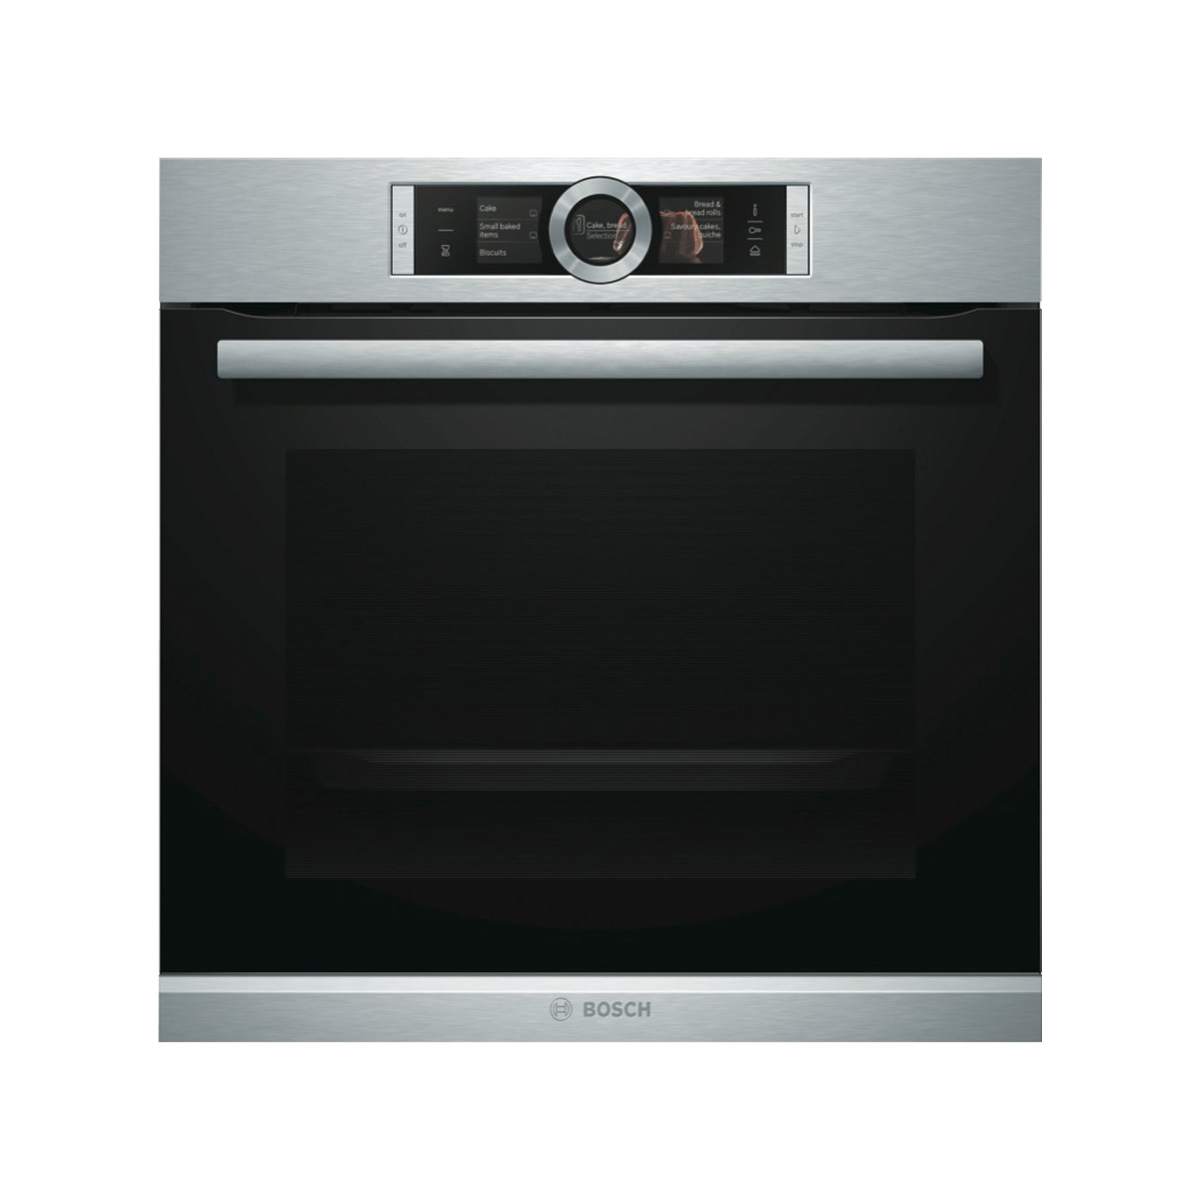 Bosch Electric Oven HRG6767S1